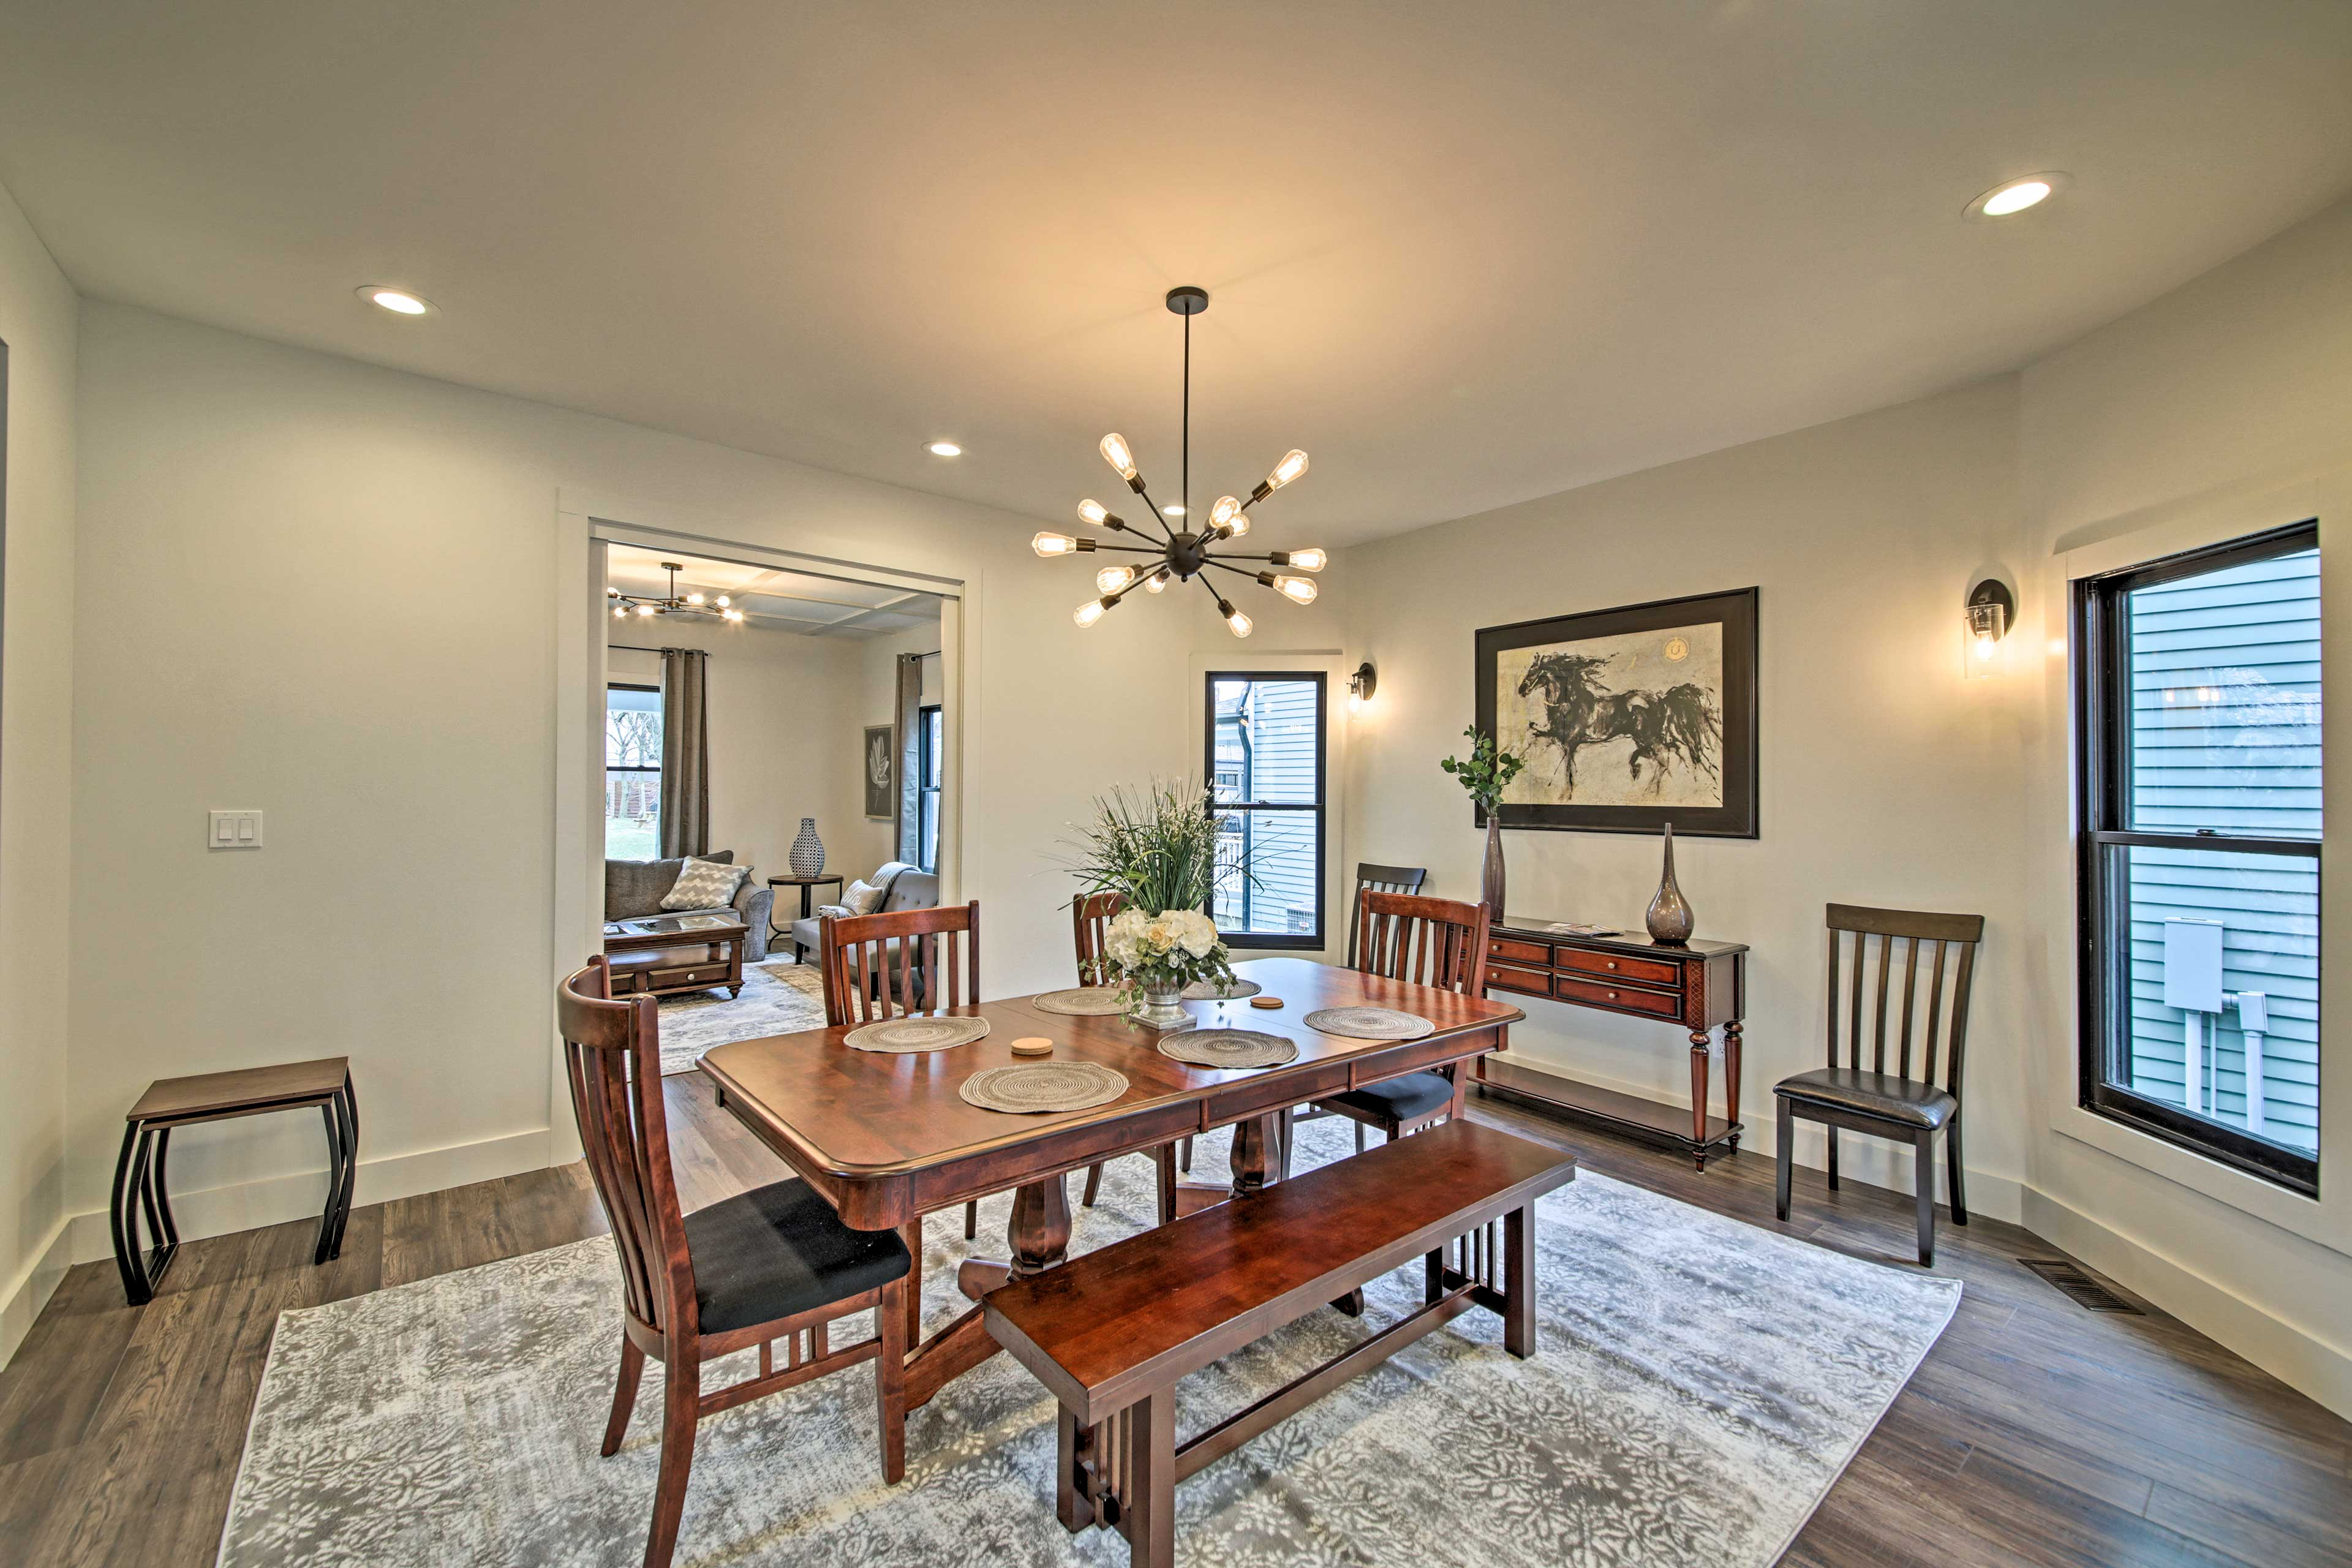 The dining room is perfect for entertaining.